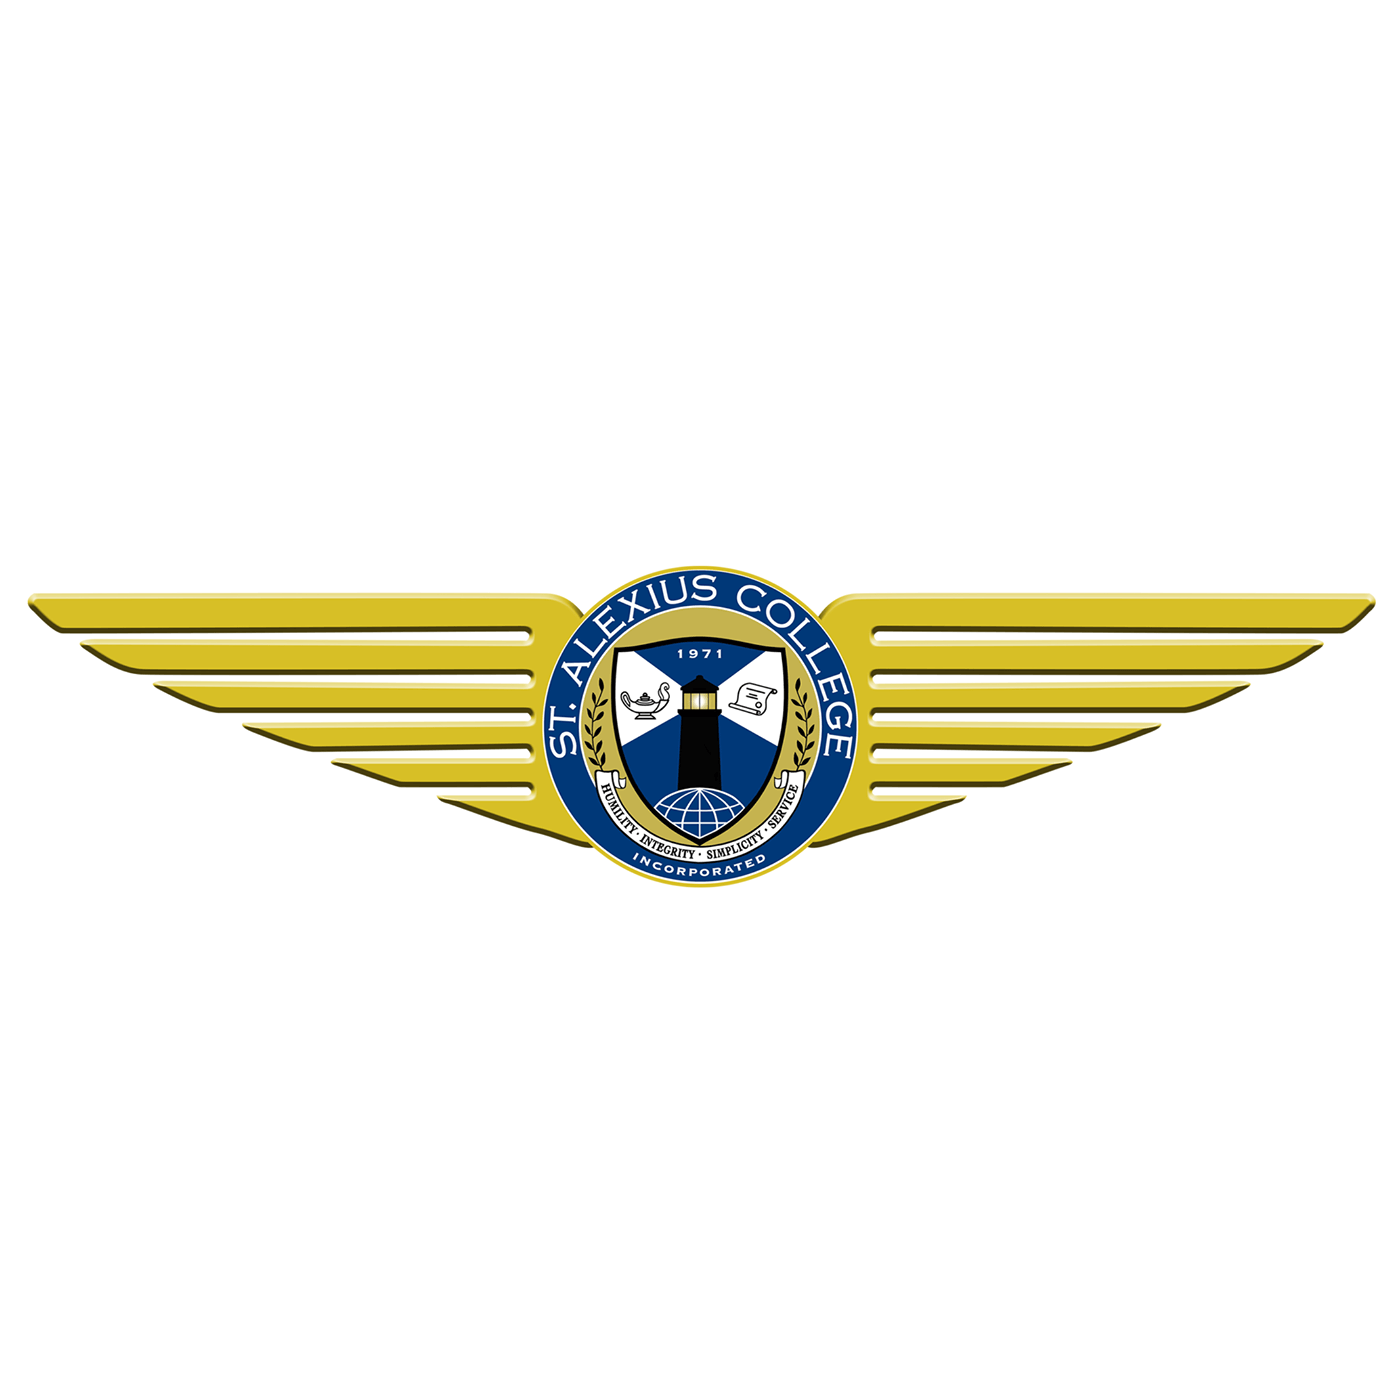 St. Alexius College Flying School Logo